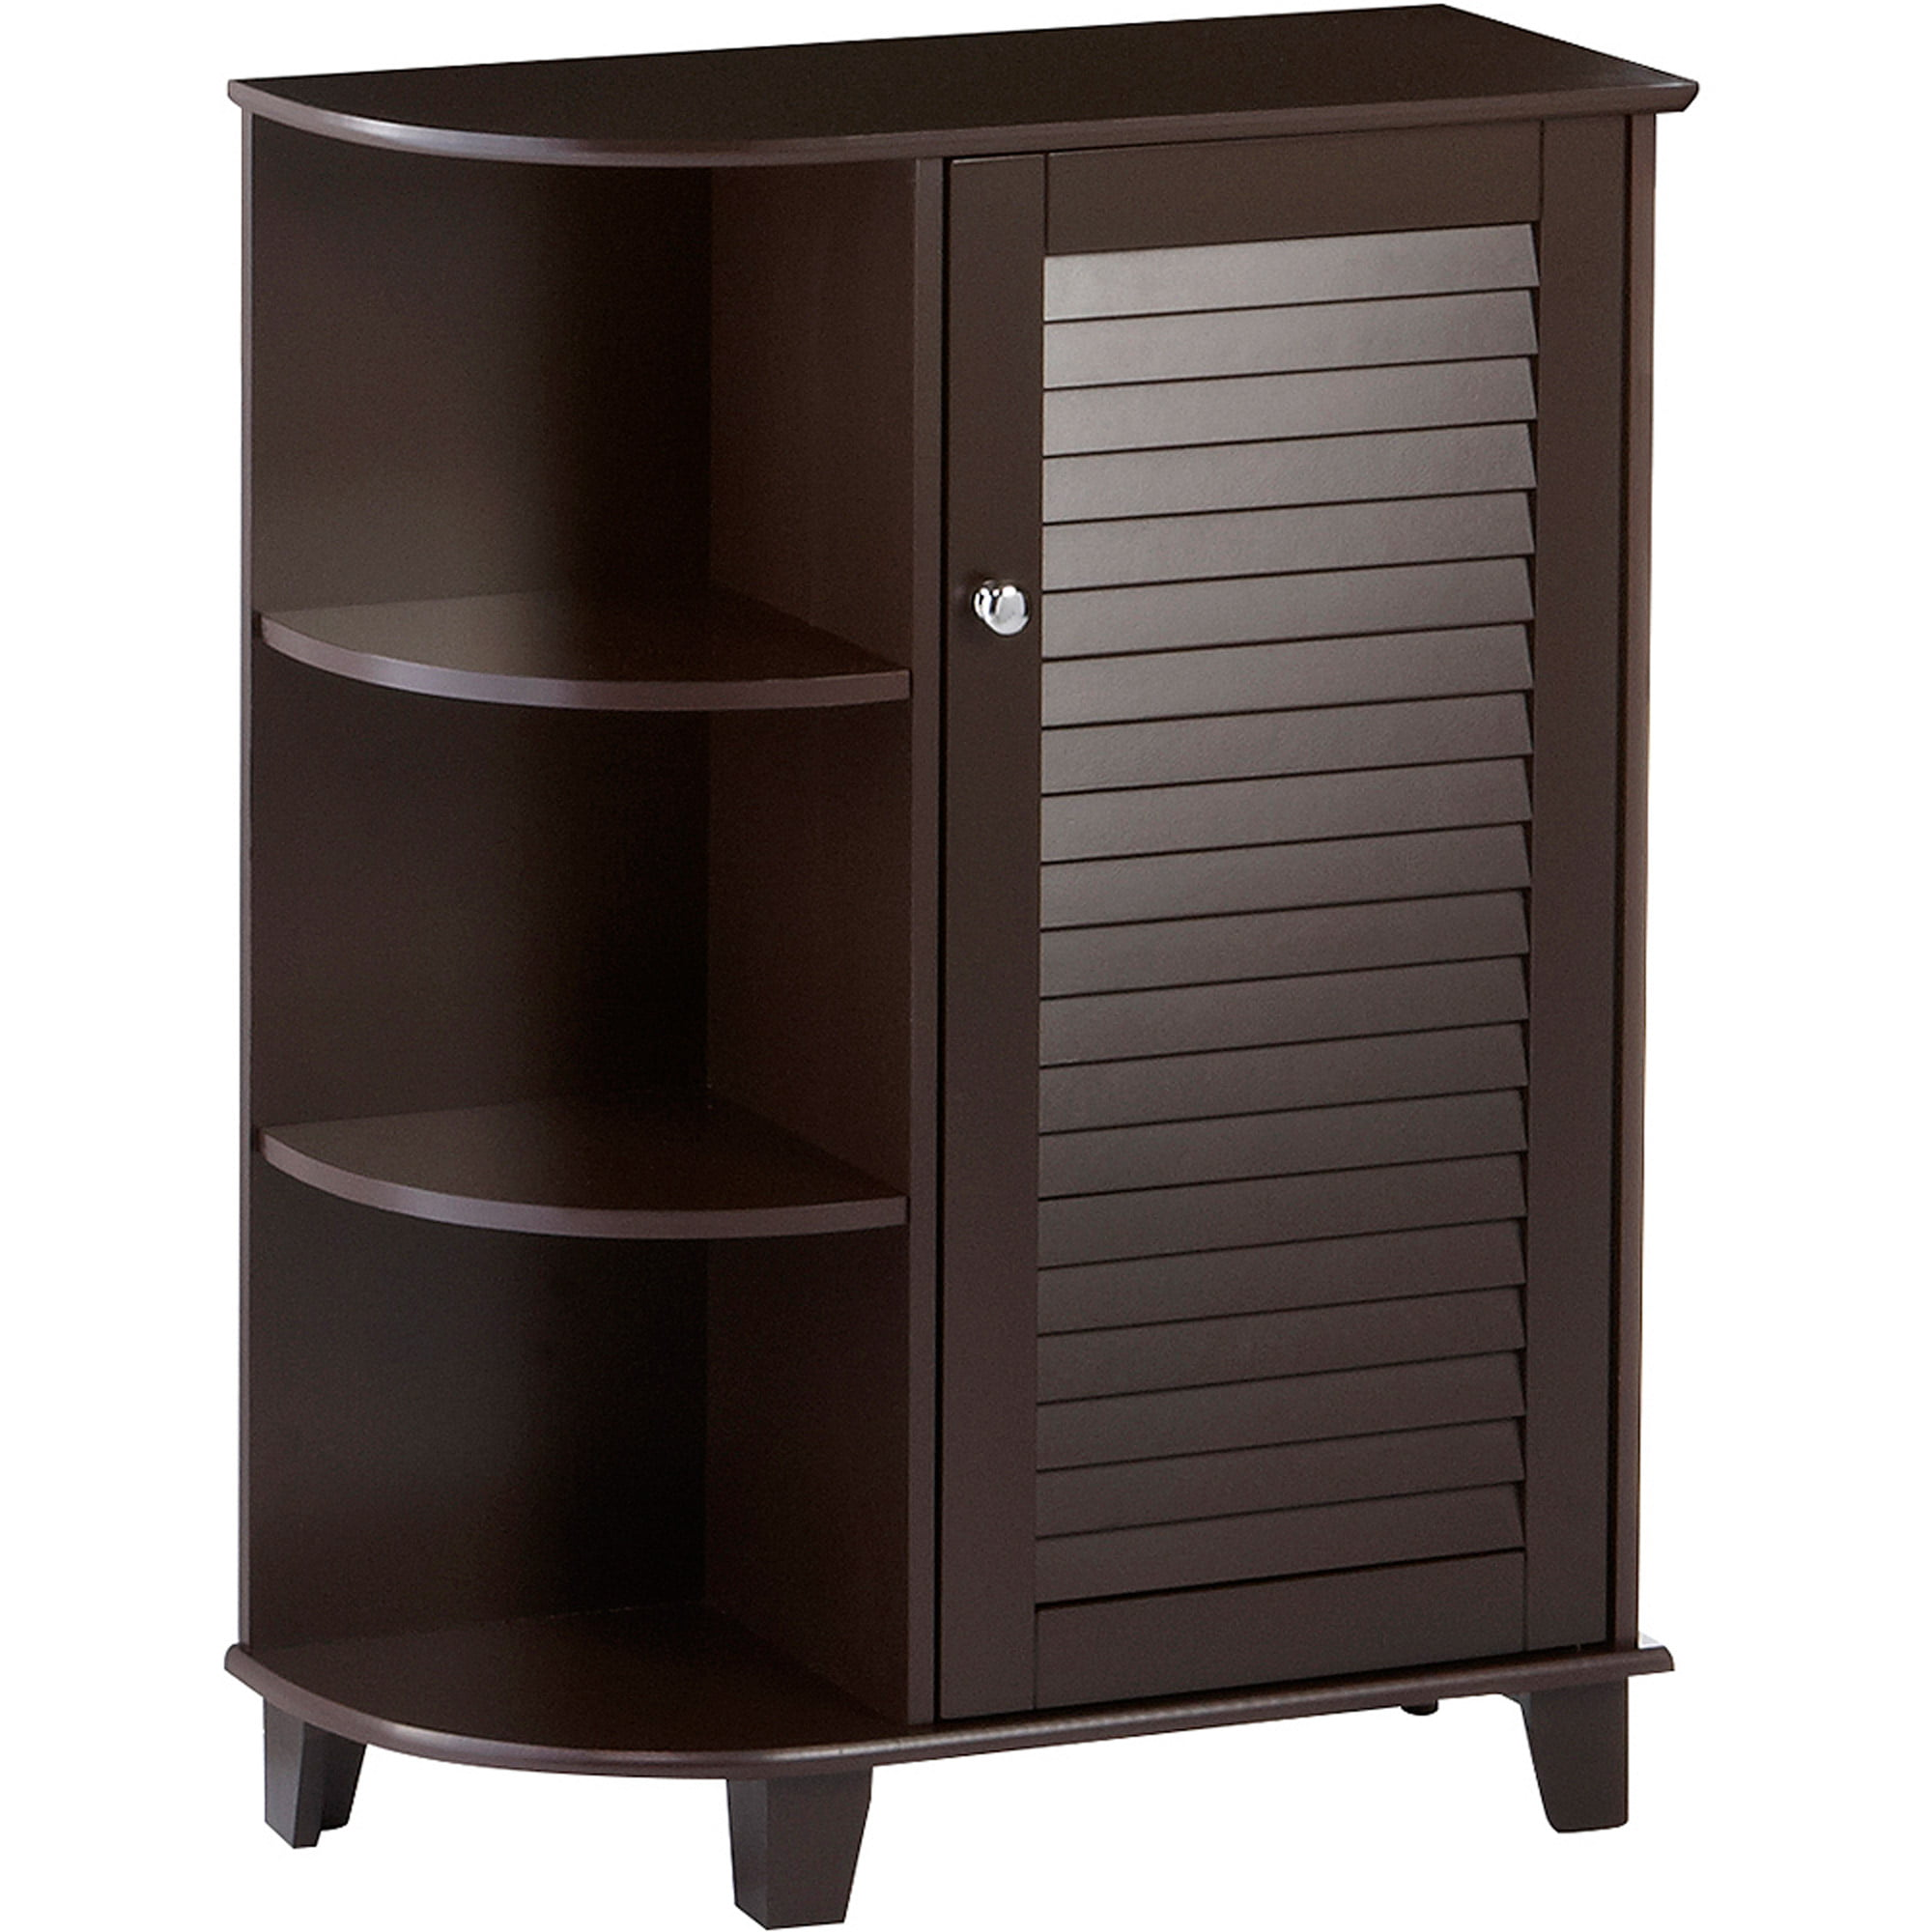 RiverRidge Home Ellsworth Collection   Floor Cabinet With Side Shelves    White   Walmart.com